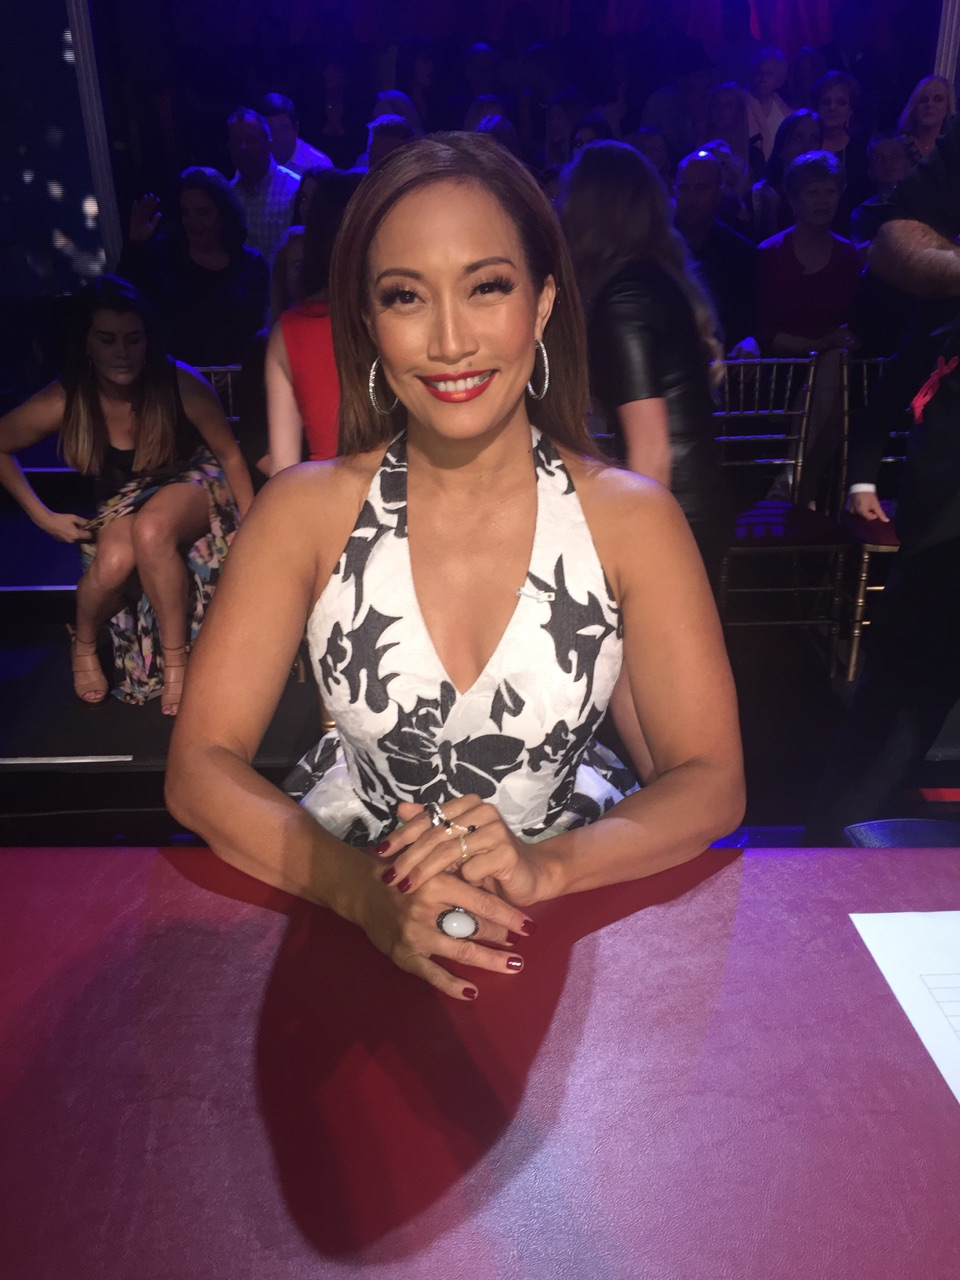 Carrie-Ann-Inabas-Dancing-With-The-Stars-Season-22-Blog-Week-3